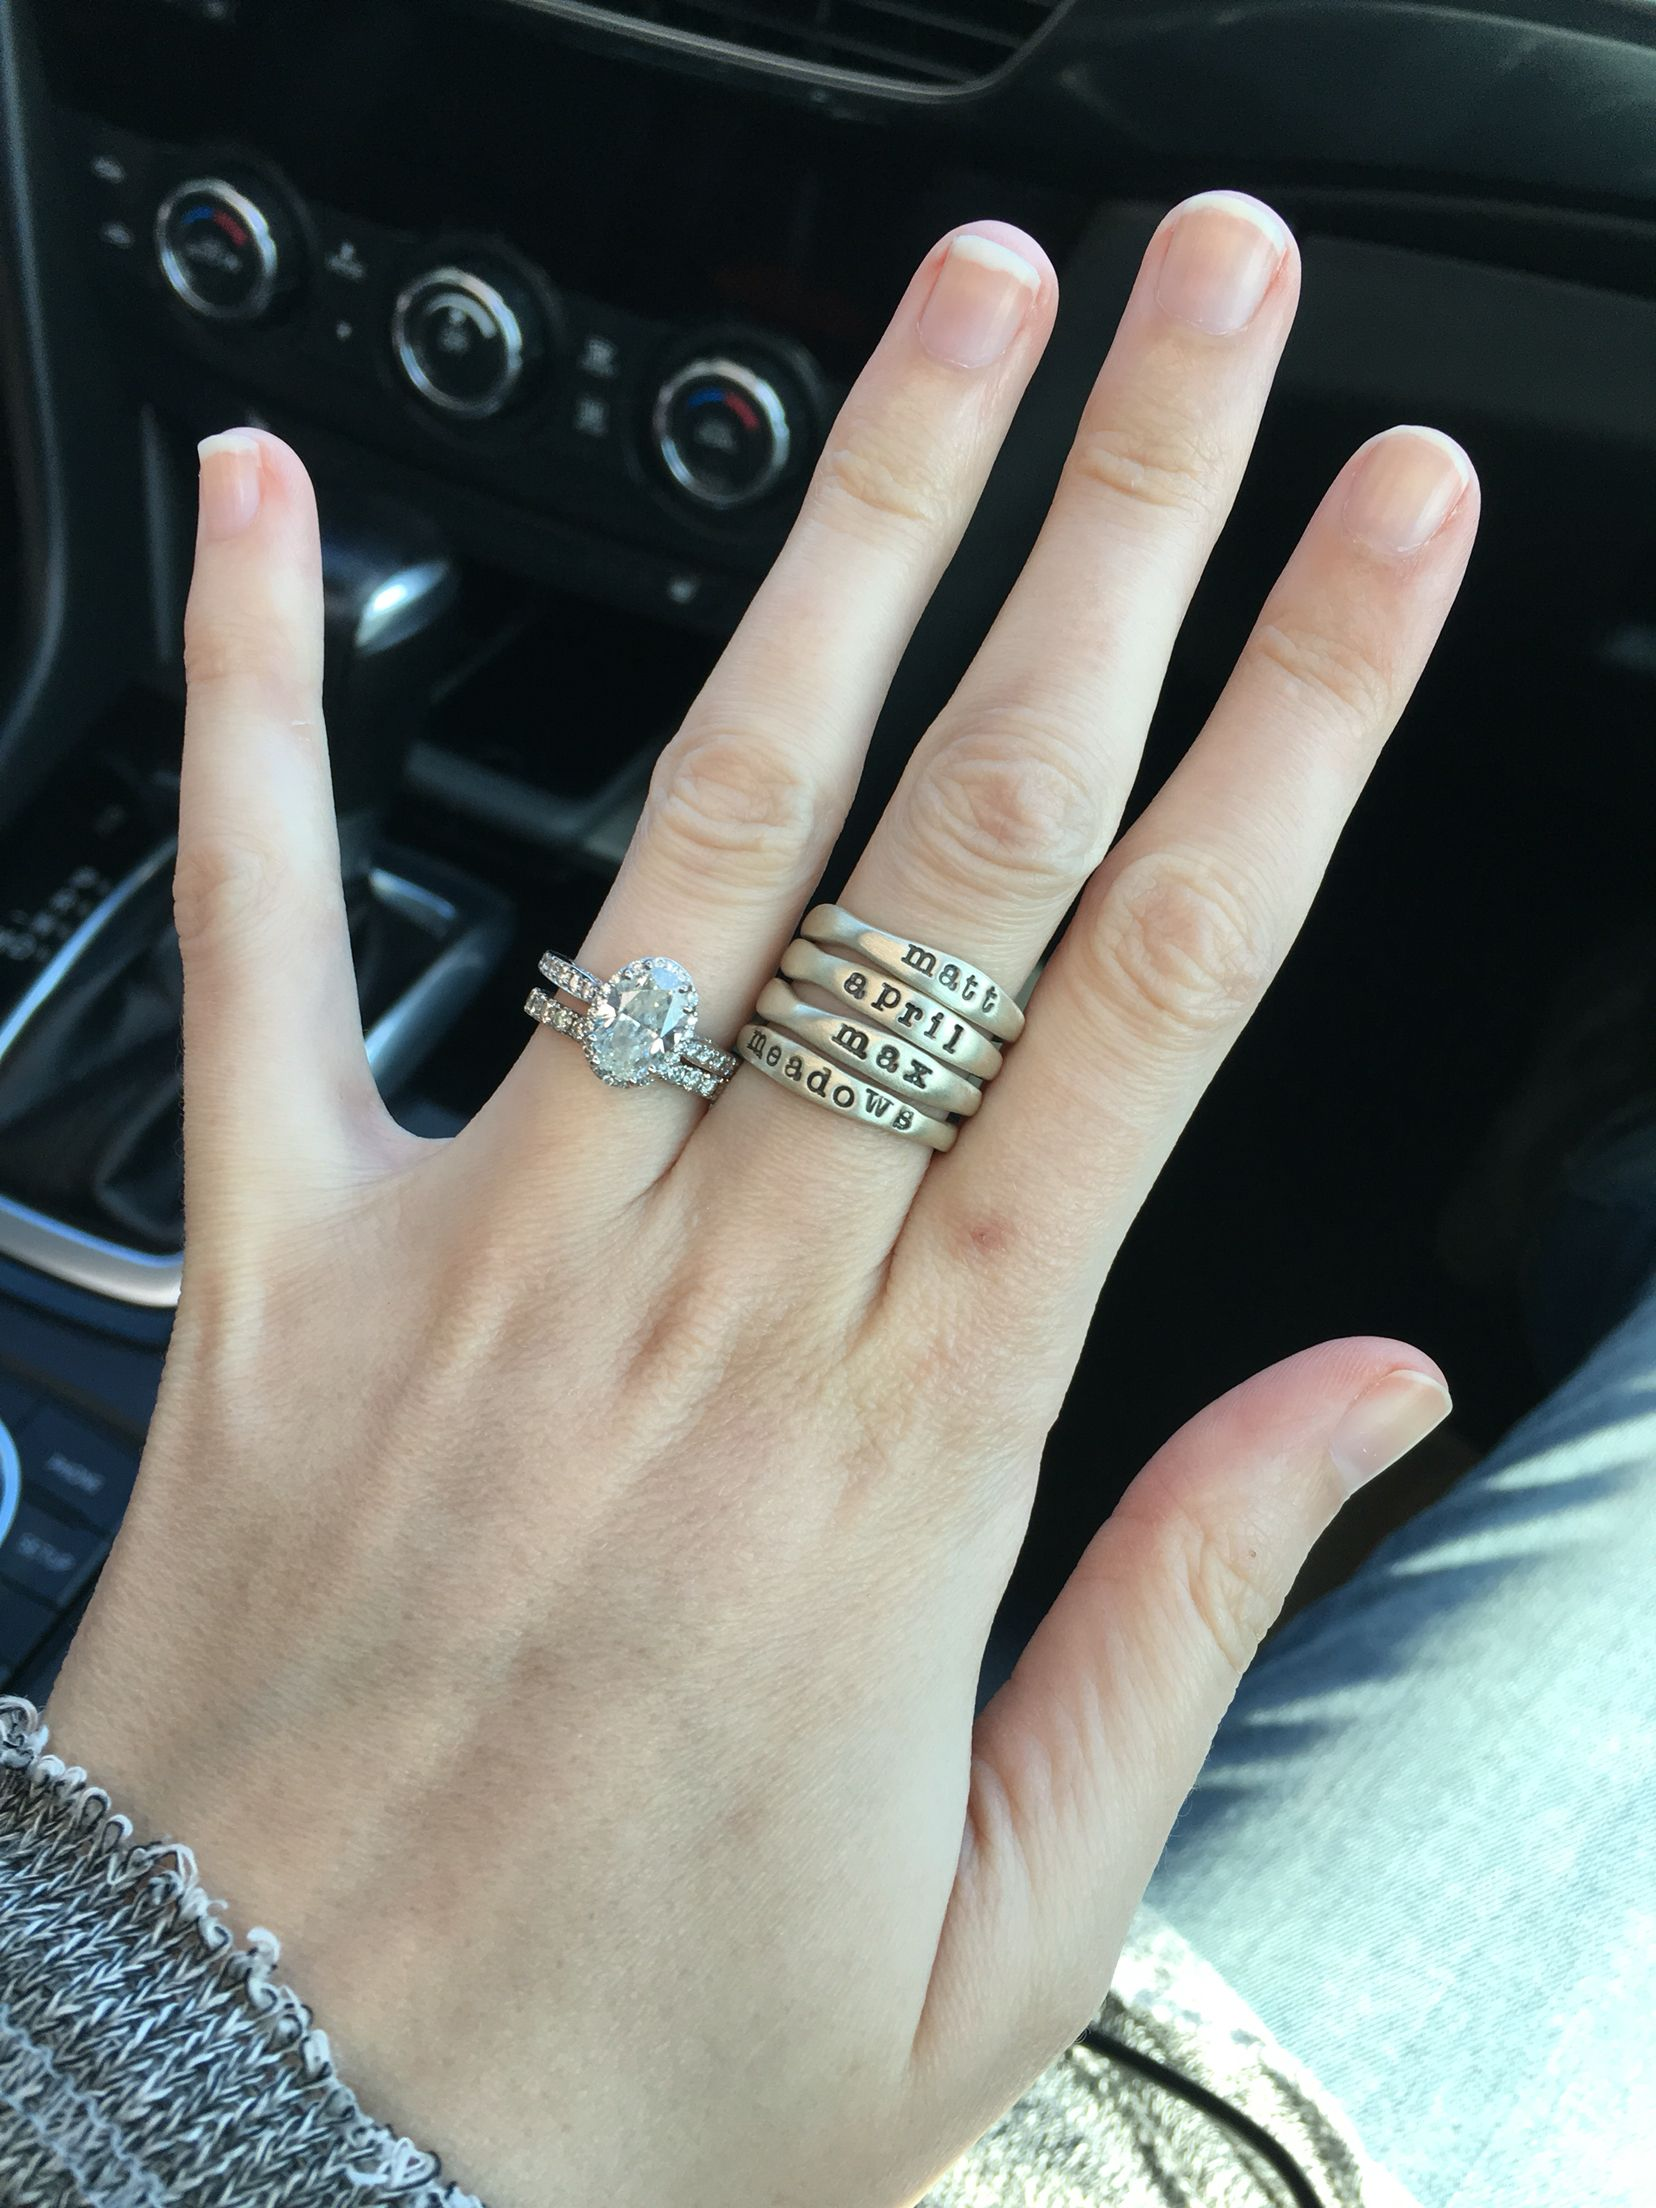 c28720148 Lisa Leonard stacking name rings ...4 just like hers: Bill, Ryan, Morgan,  Casey...my heart <3